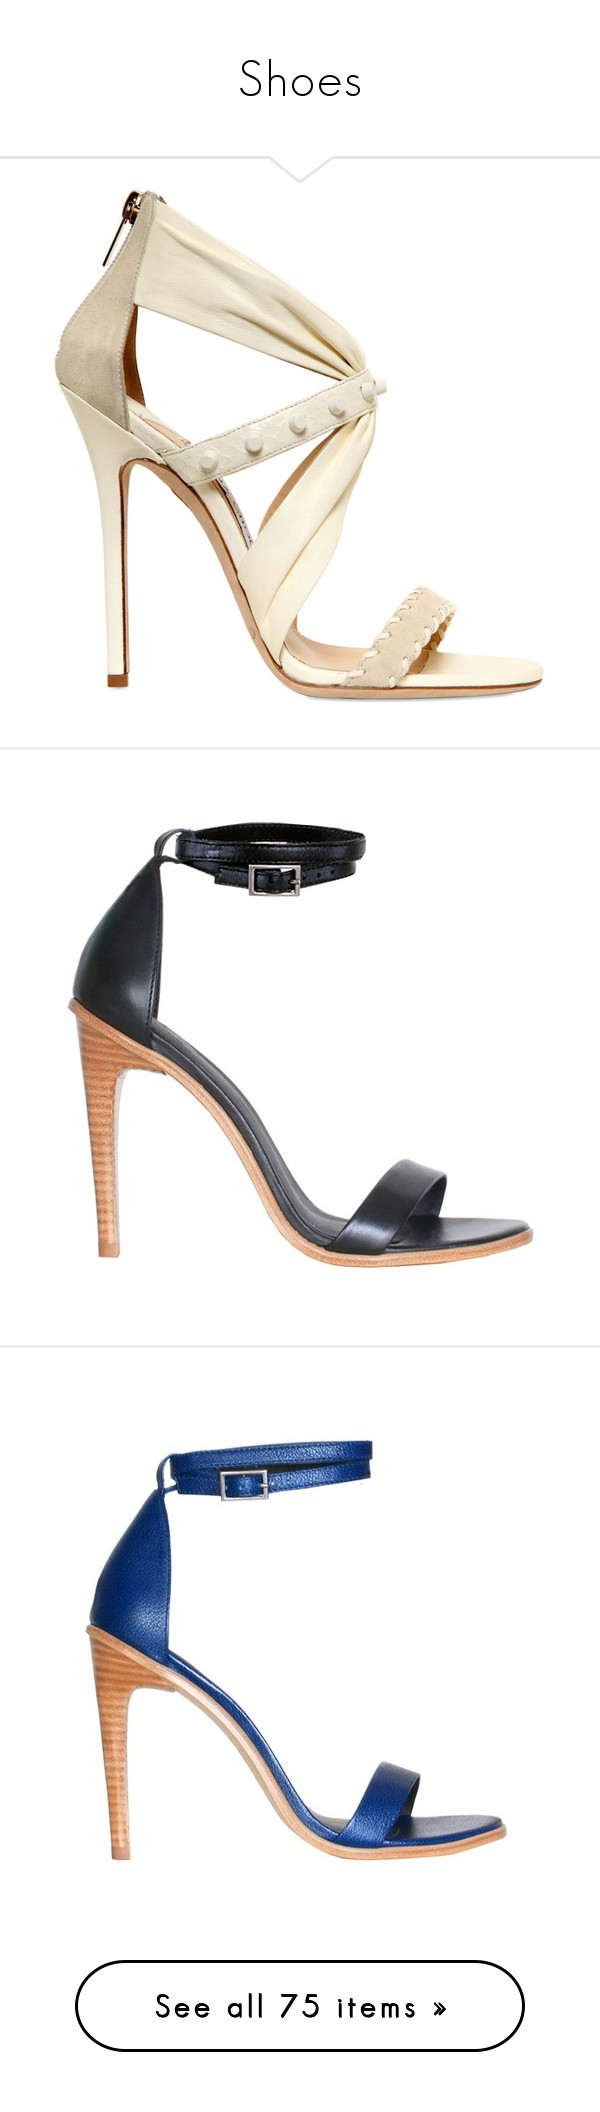 """""""Shoes"""" by lashone-kelly ❤ liked on Polyvore featuring shoes, sandals, heels, white, jimmy choo shoes, white shoes, white heeled sandals, leather high heel sandals, jimmy choo sandals and lucy hale"""